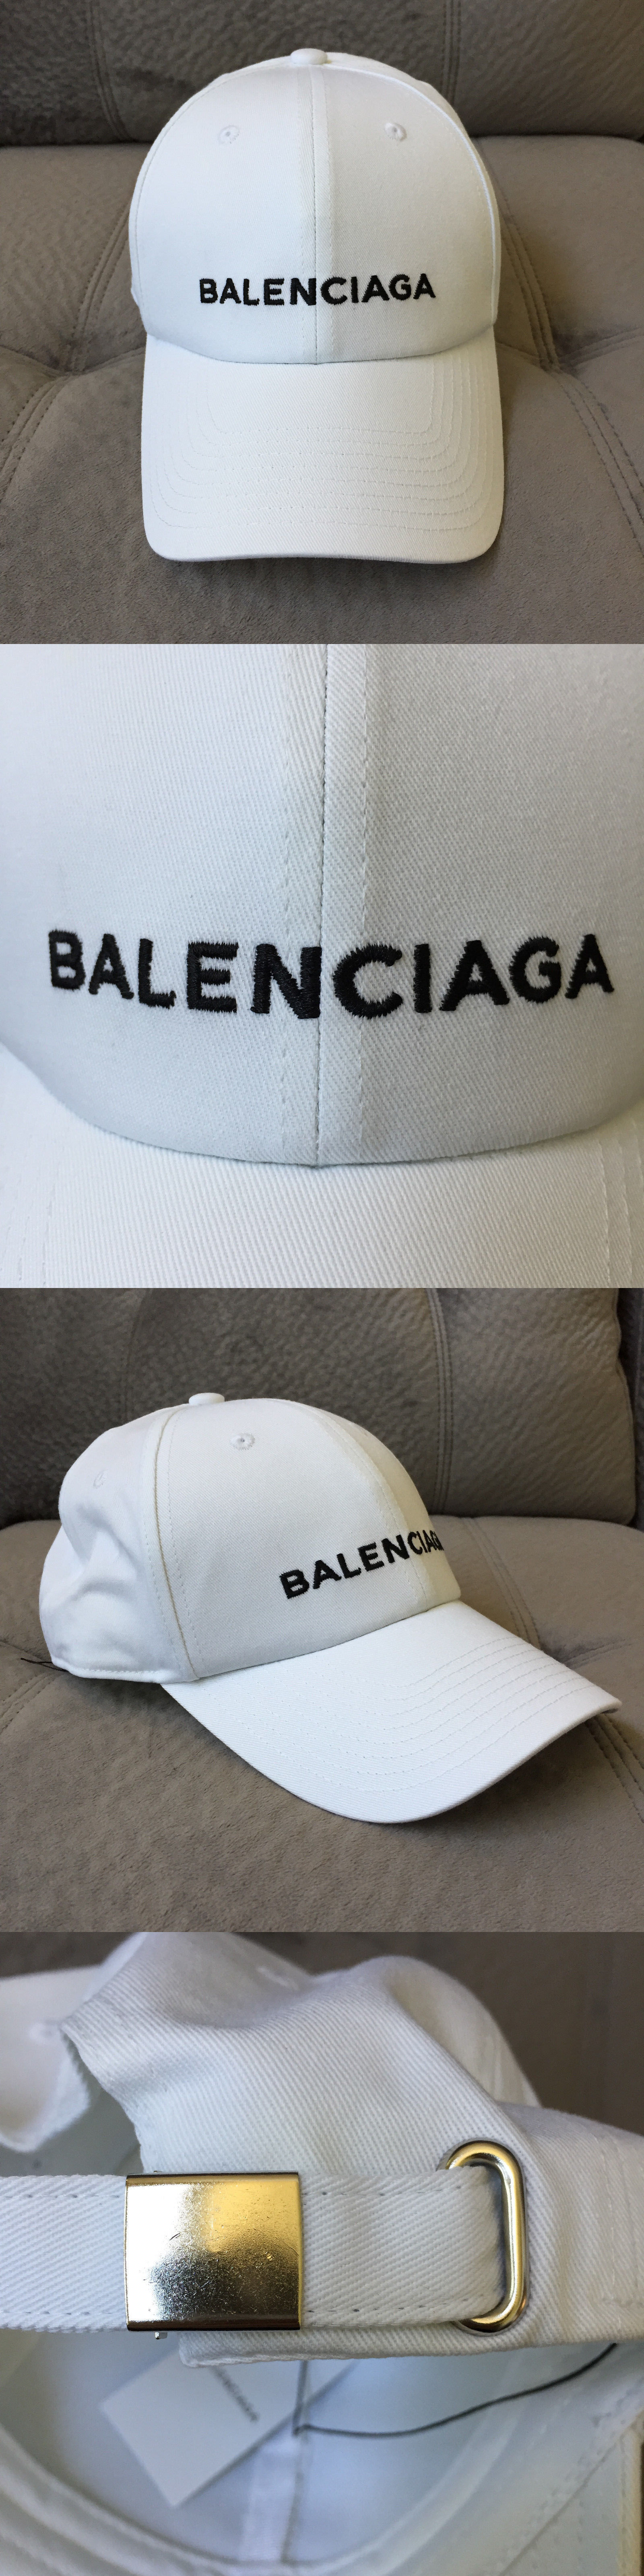 204b8235e7d76 Hats 163543  Custom Made New Unisex One Size Adjustable Balenciaga Baseball  Cap In White -  BUY IT NOW ONLY   44.99 on eBay!